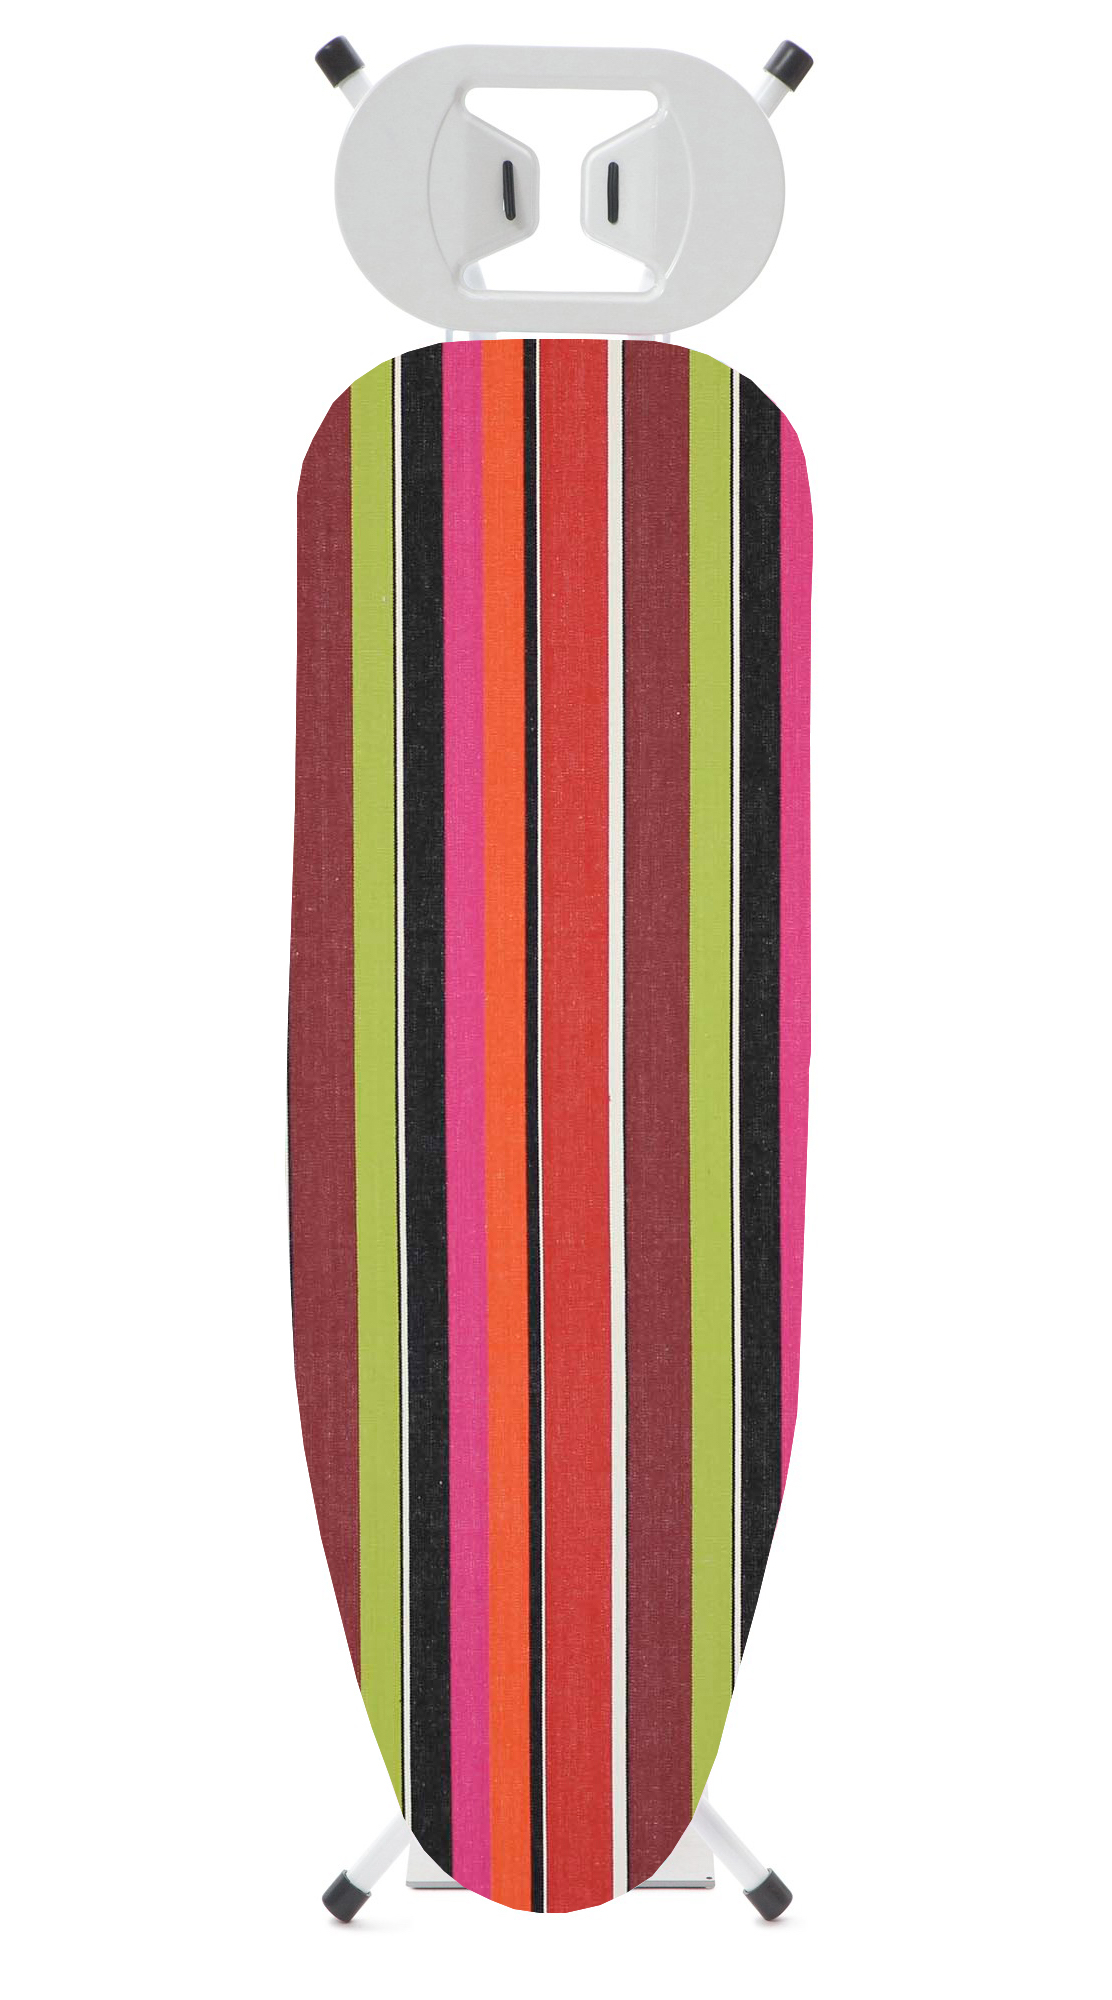 Fuschia Striped Ironing Board Covers | Deckchair Stripe Covers for Ironing Boards  Hunting Stripes